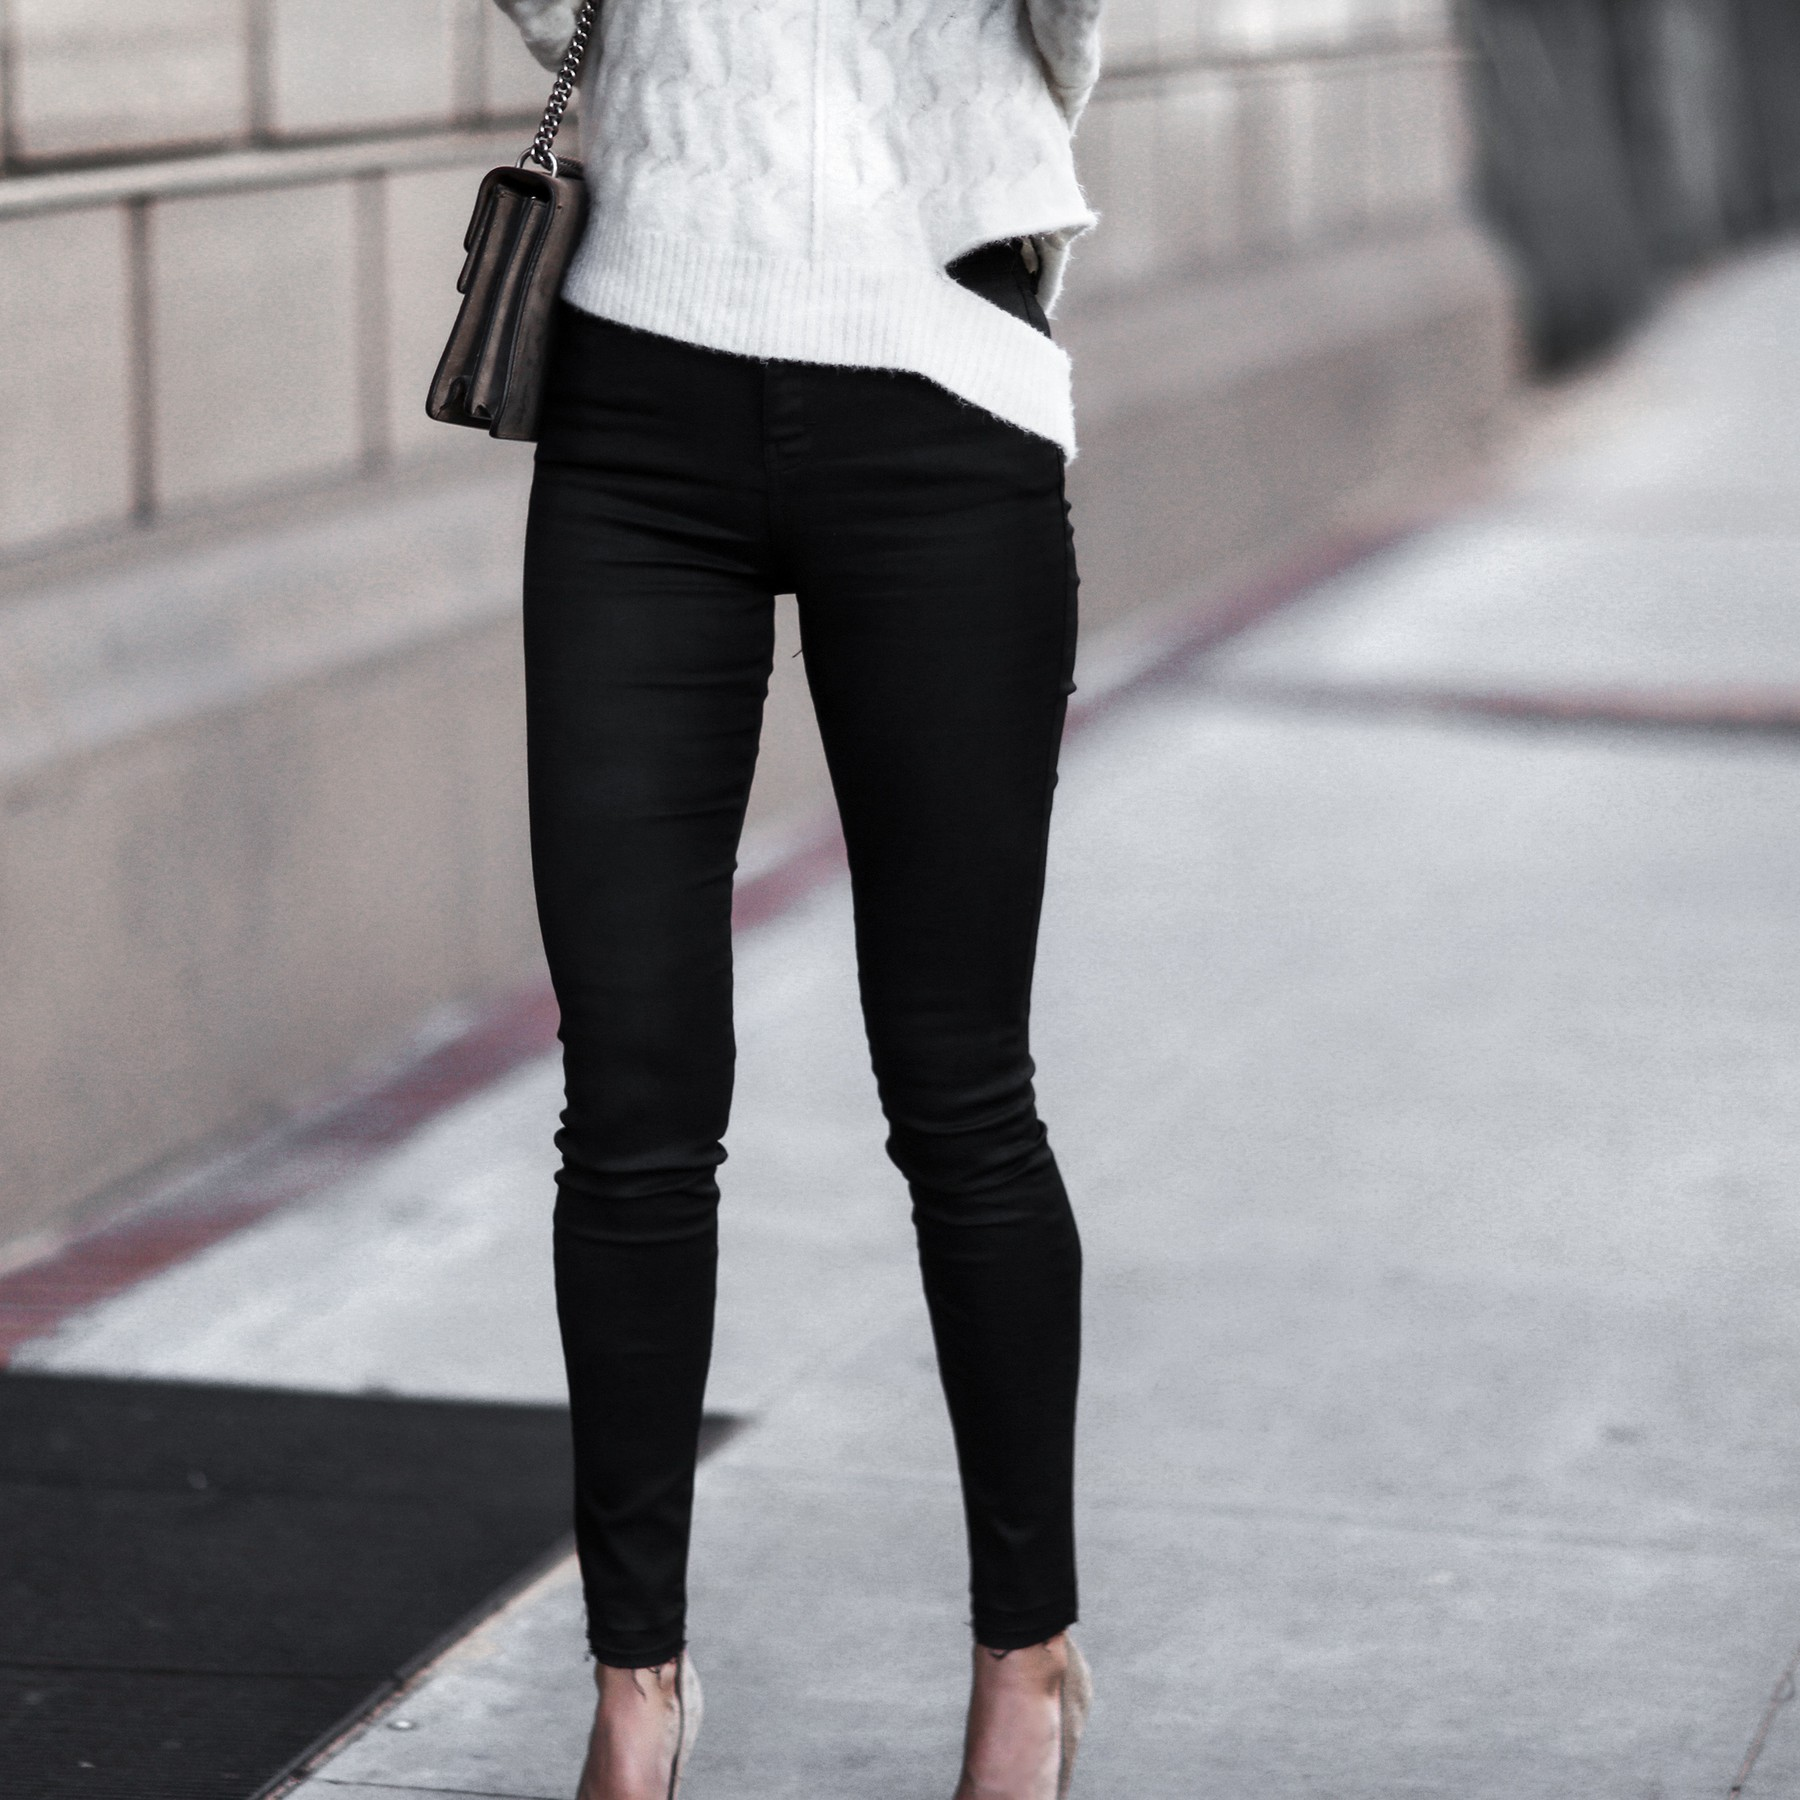 matte black jeans with frayed hem, white knit sweater with cut outs, nude suede pumps, gucci bag